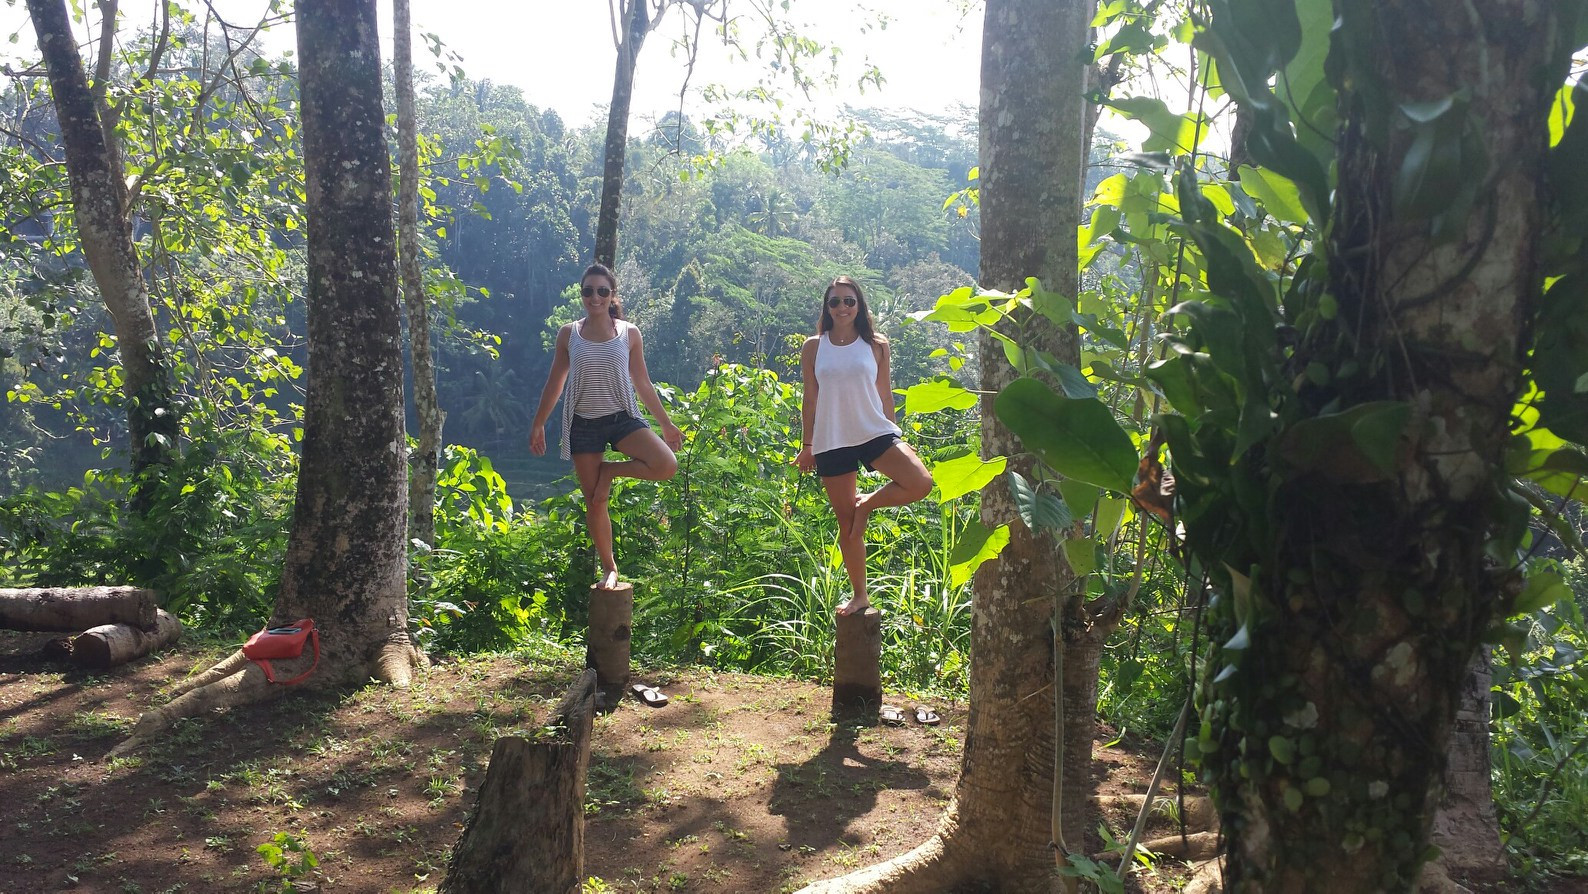 My sister and I finding our balance in Bali